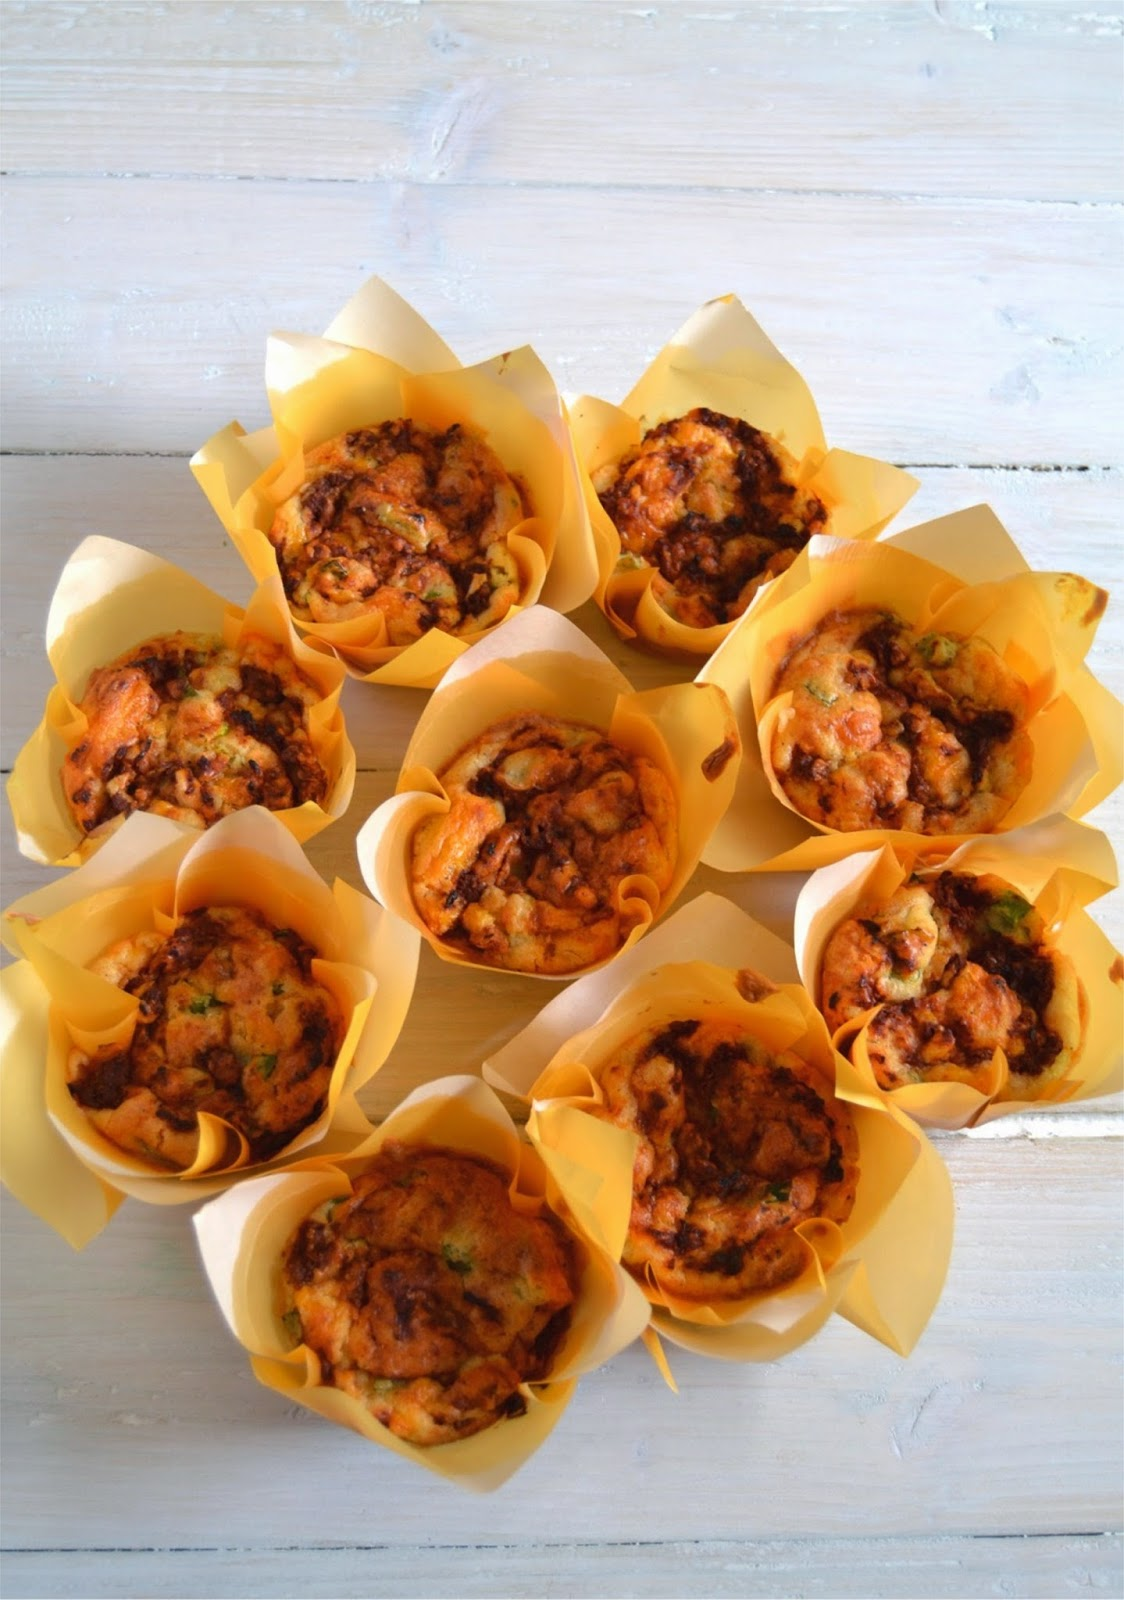 Cheese & Spring O Muffins with Sun-Dried Tomato Swirl